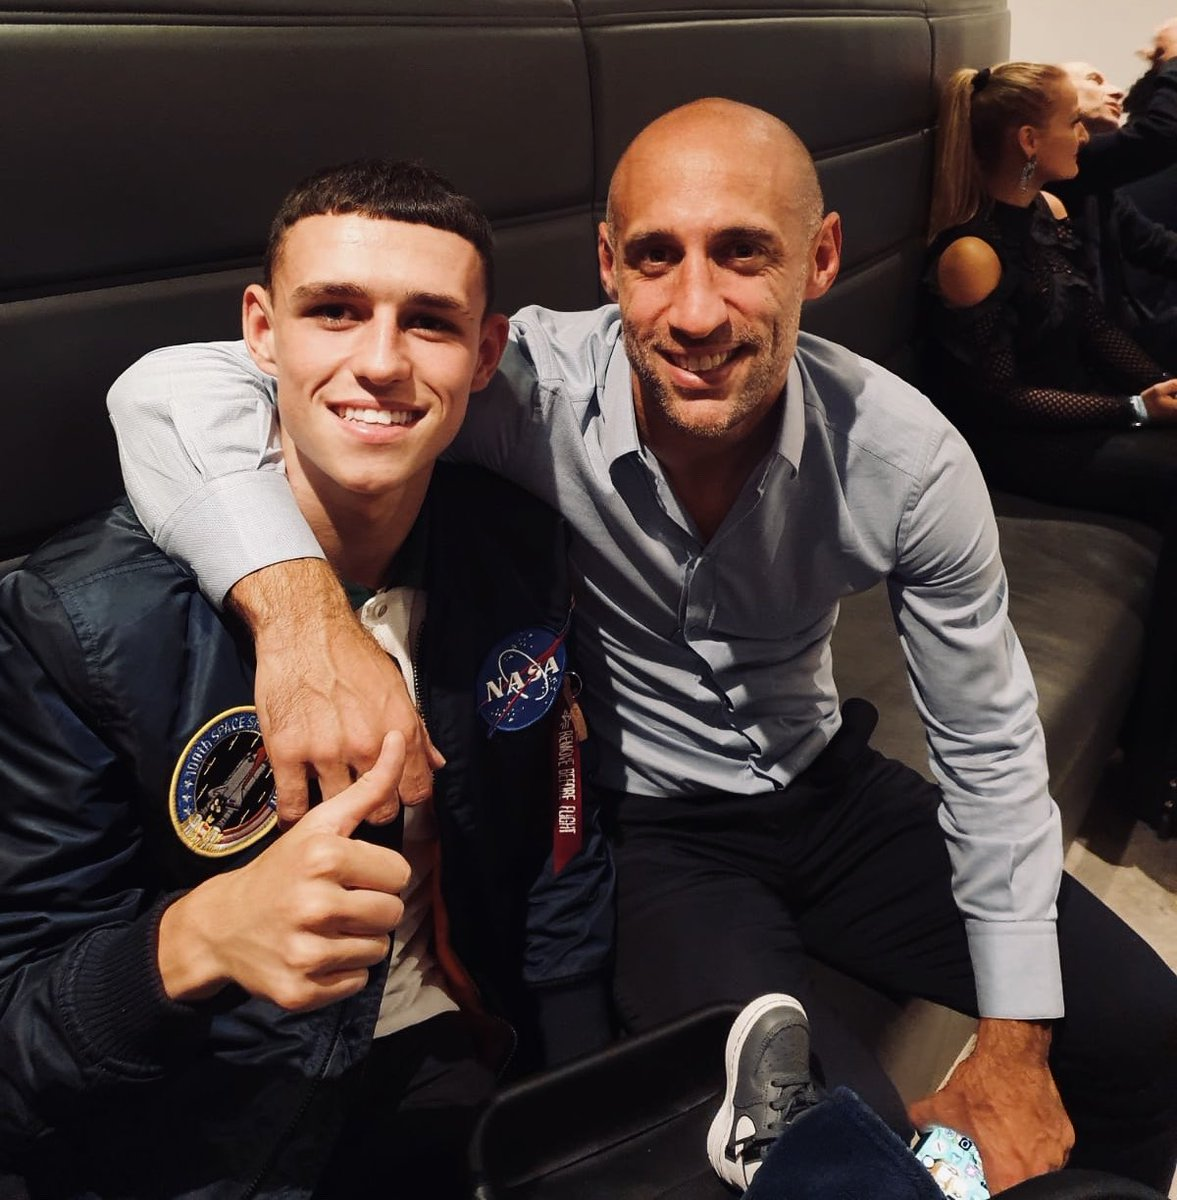 Great to see you the other night @pablo_zabaleta 💙 https://t.co/ibJpbnwR1Z